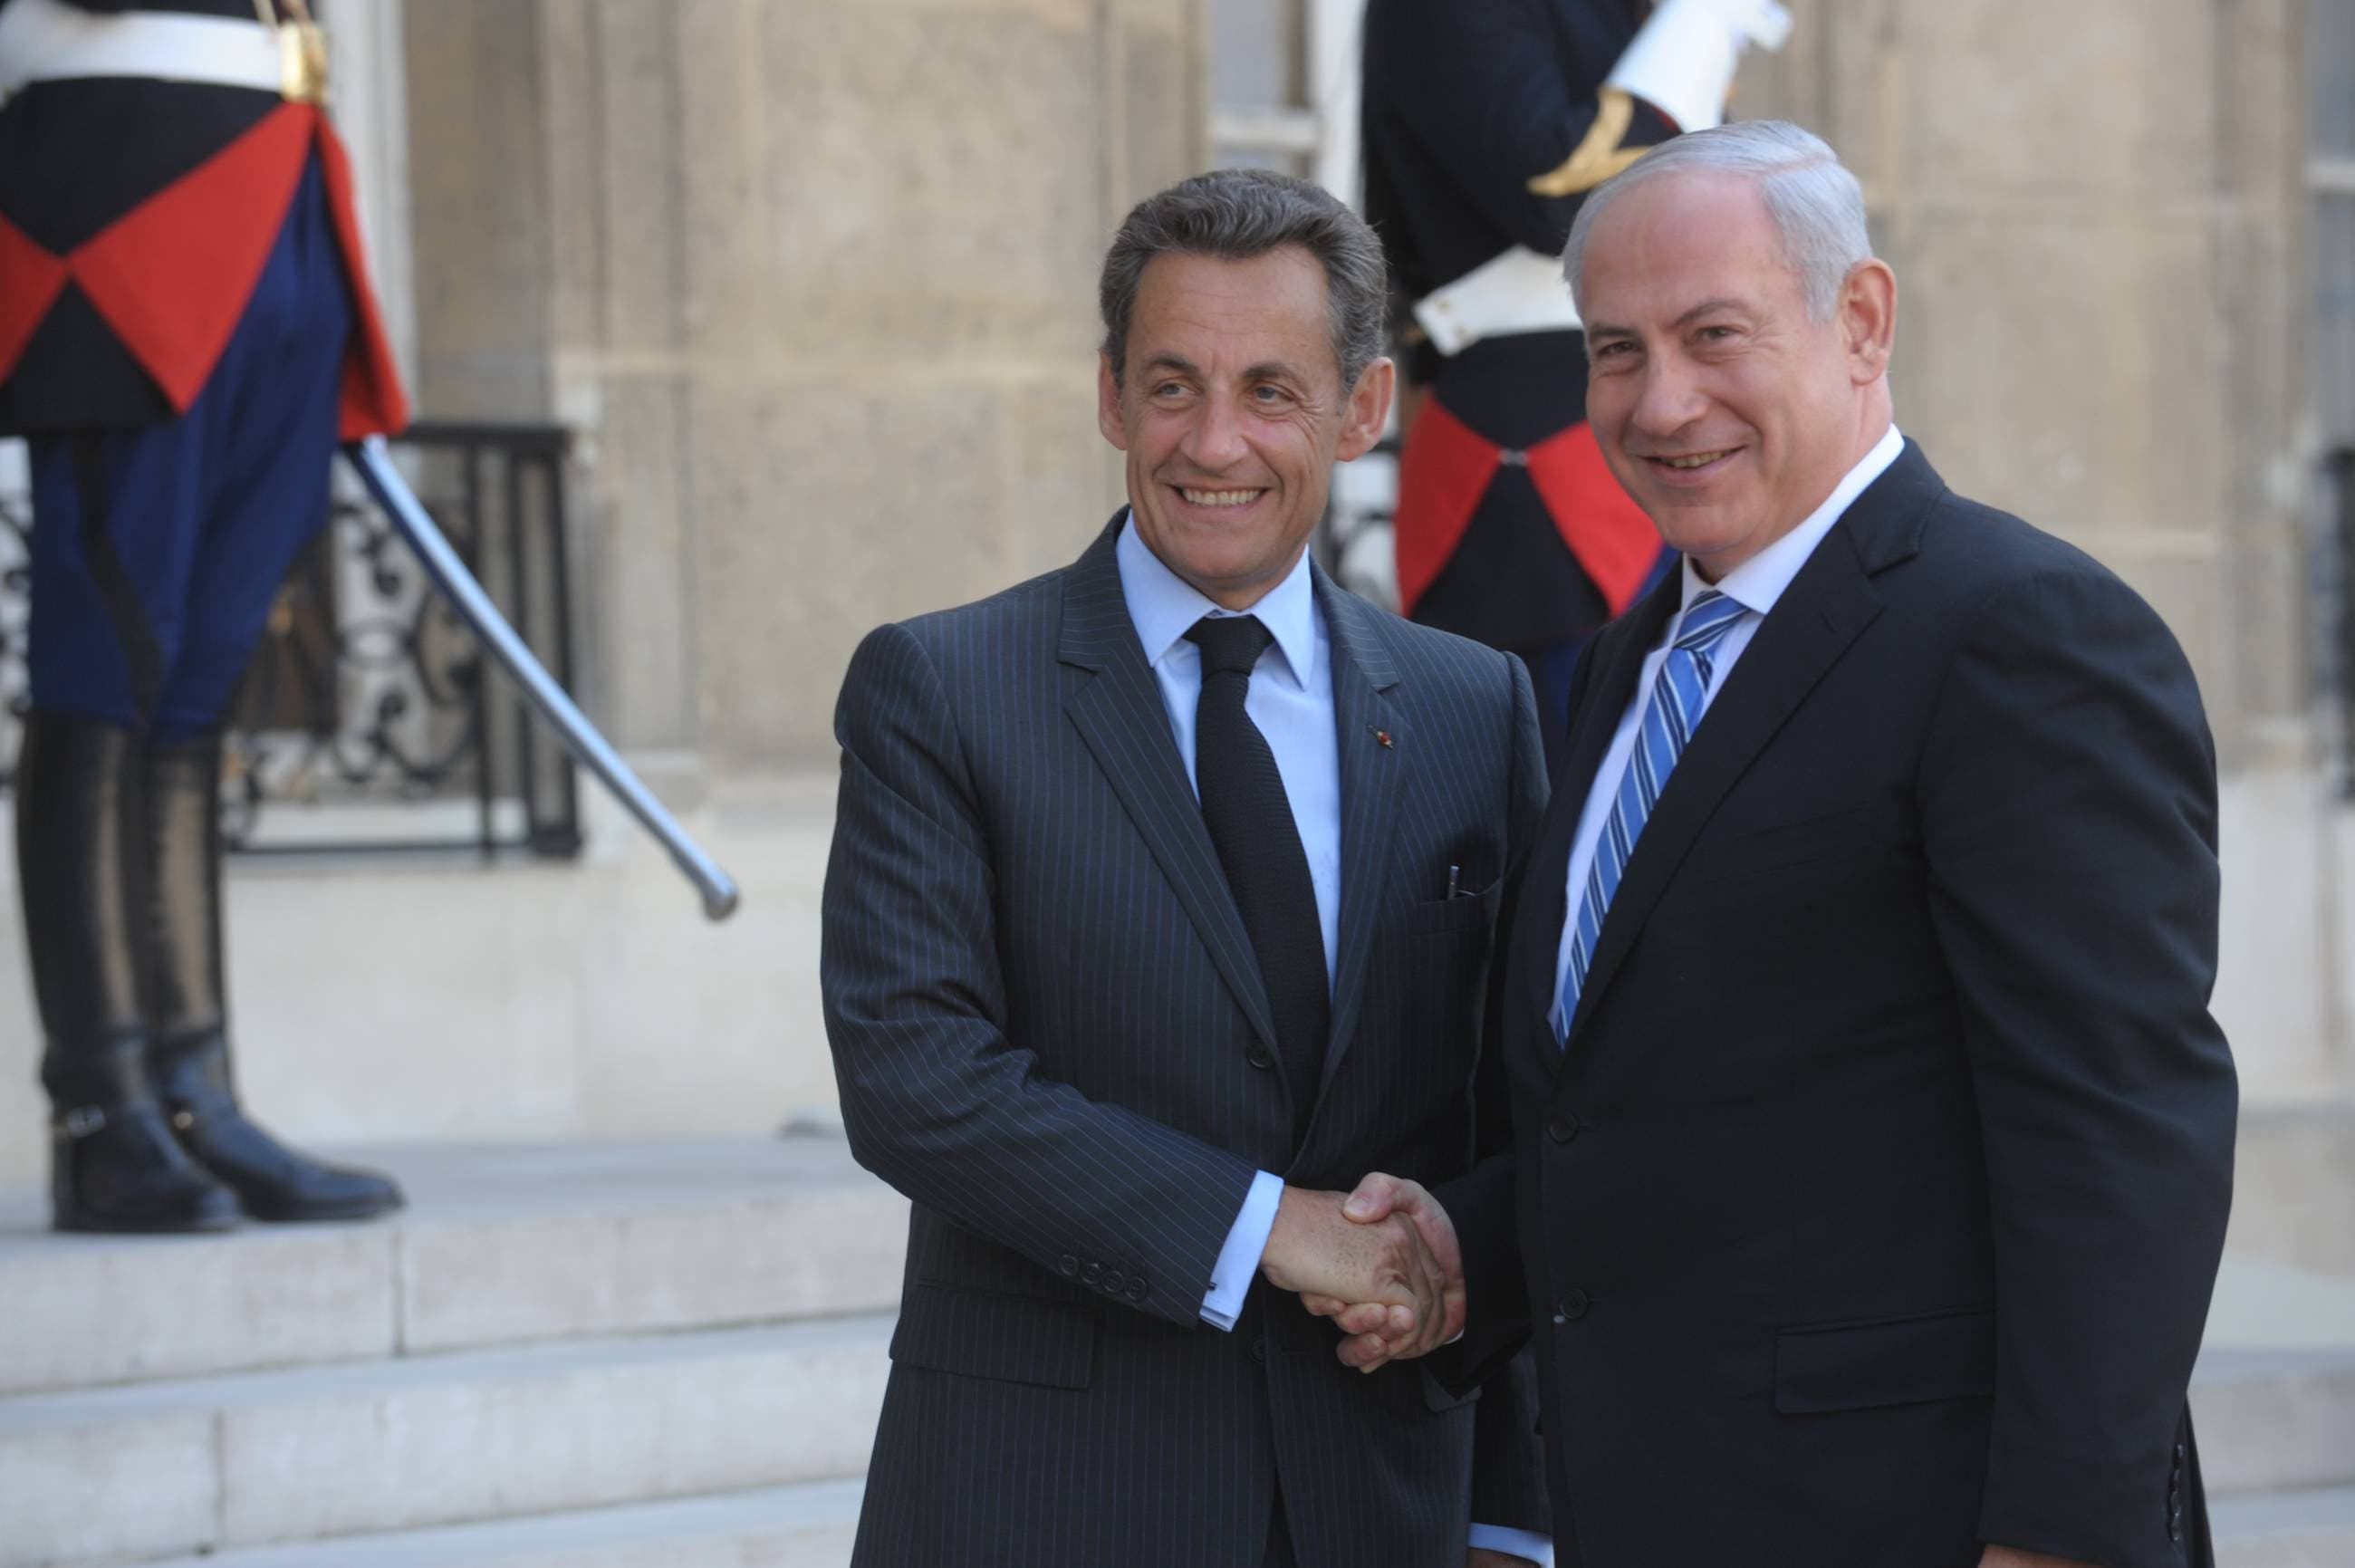 Israel's Netanyahu must have felt more hurt or at least double dealt by the US's Obama, than betrayed by France's Sarkozy, who has not  had a the strong history of undying allegiance to Israel that the US is notorious for. France voted to pass Palestine's bid for  UNESCO.